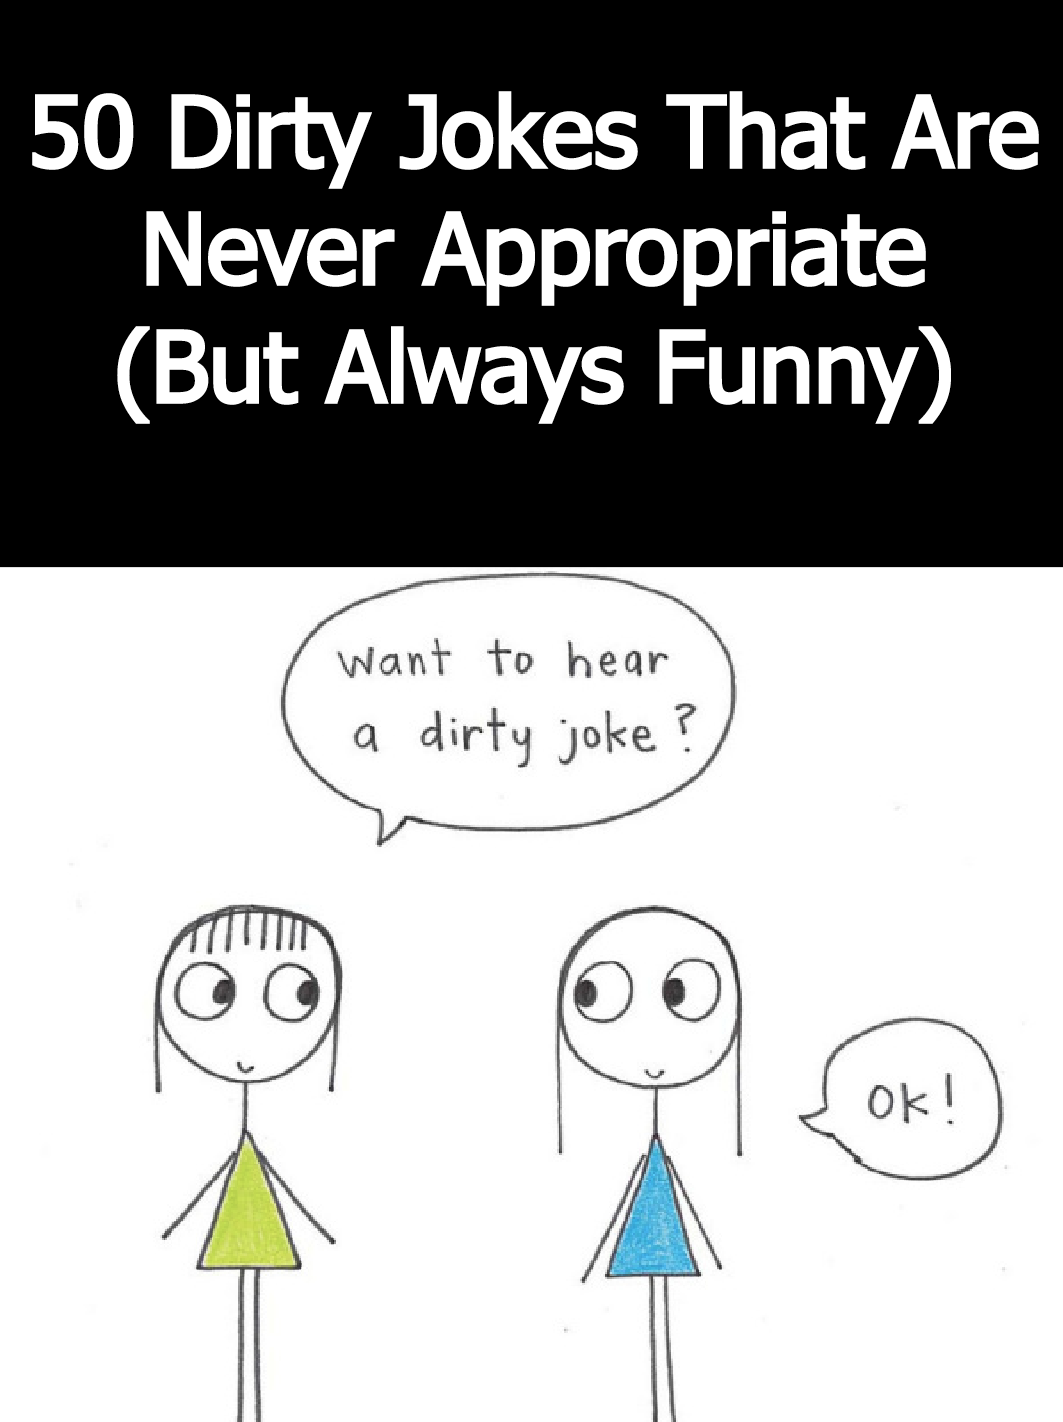 Image of: Always Funny 50 Dirty Jokes That Are never Appropriate But Always Funny Pinterest 50 Dirty Jokes That Are never Appropriate But Always Funny